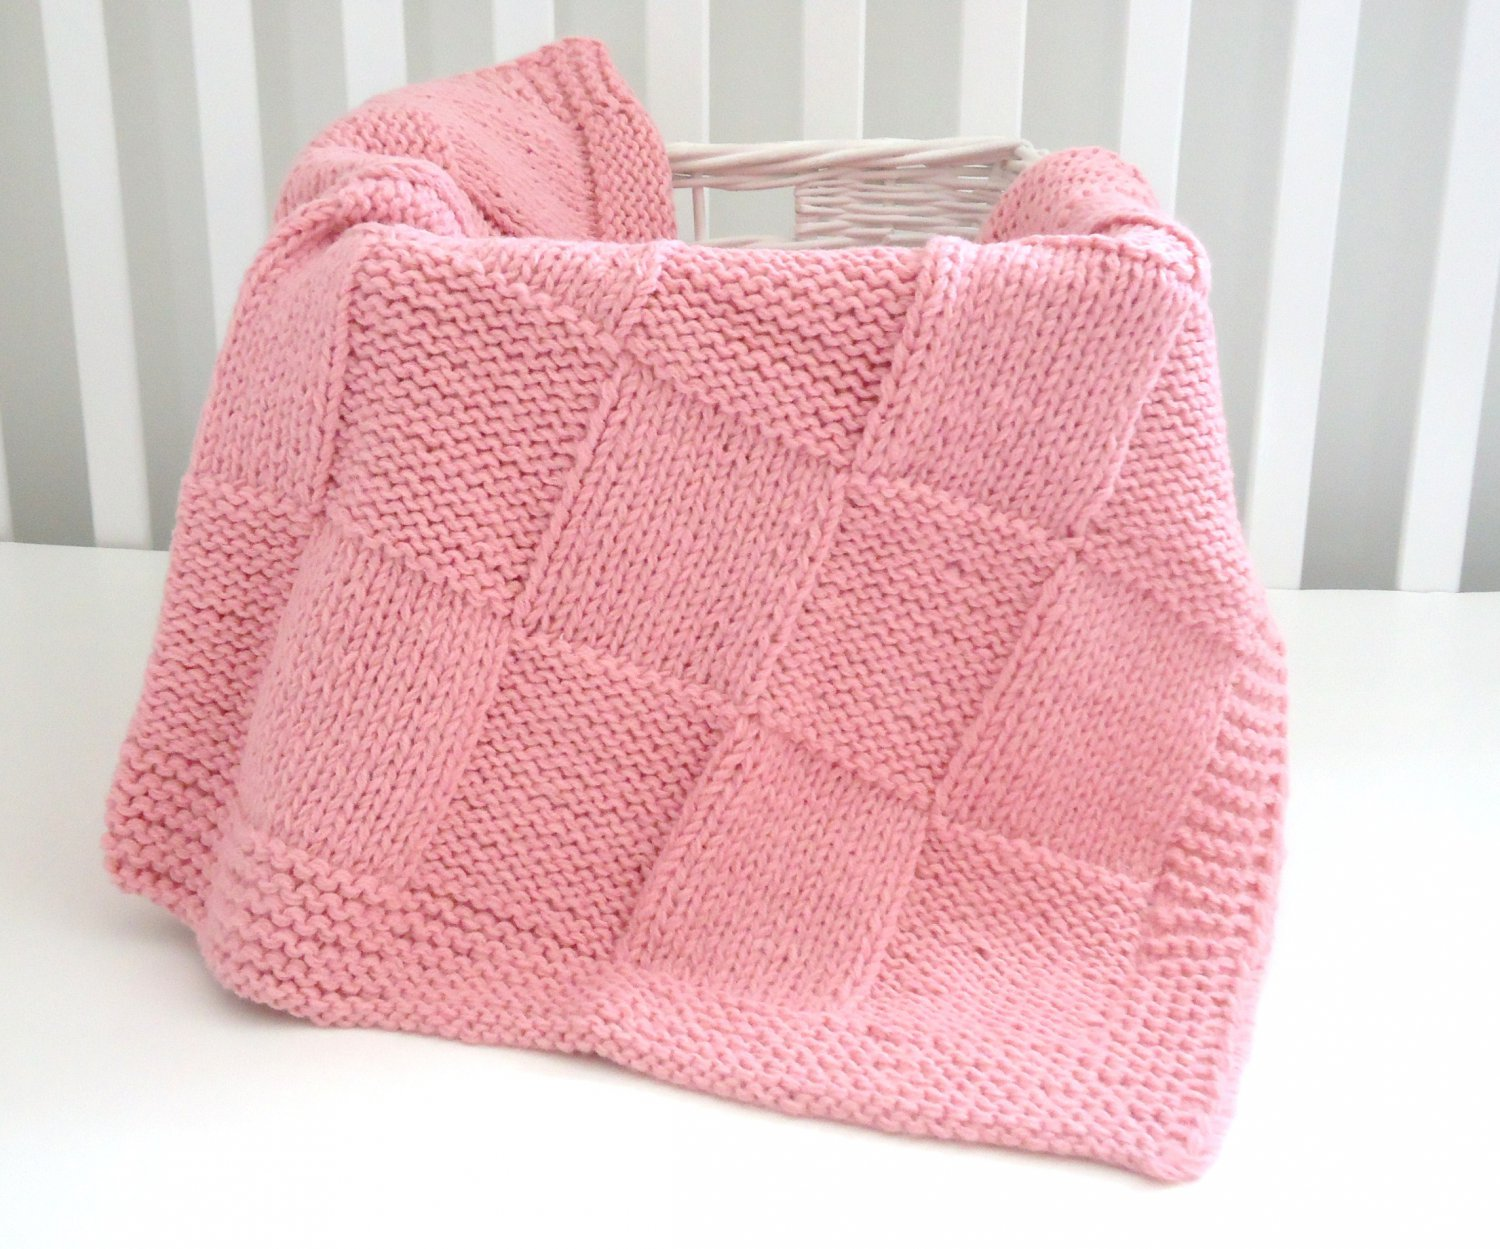 Handmade Knitted Patchwork Girl Blanket 30 x36 Inch Pink